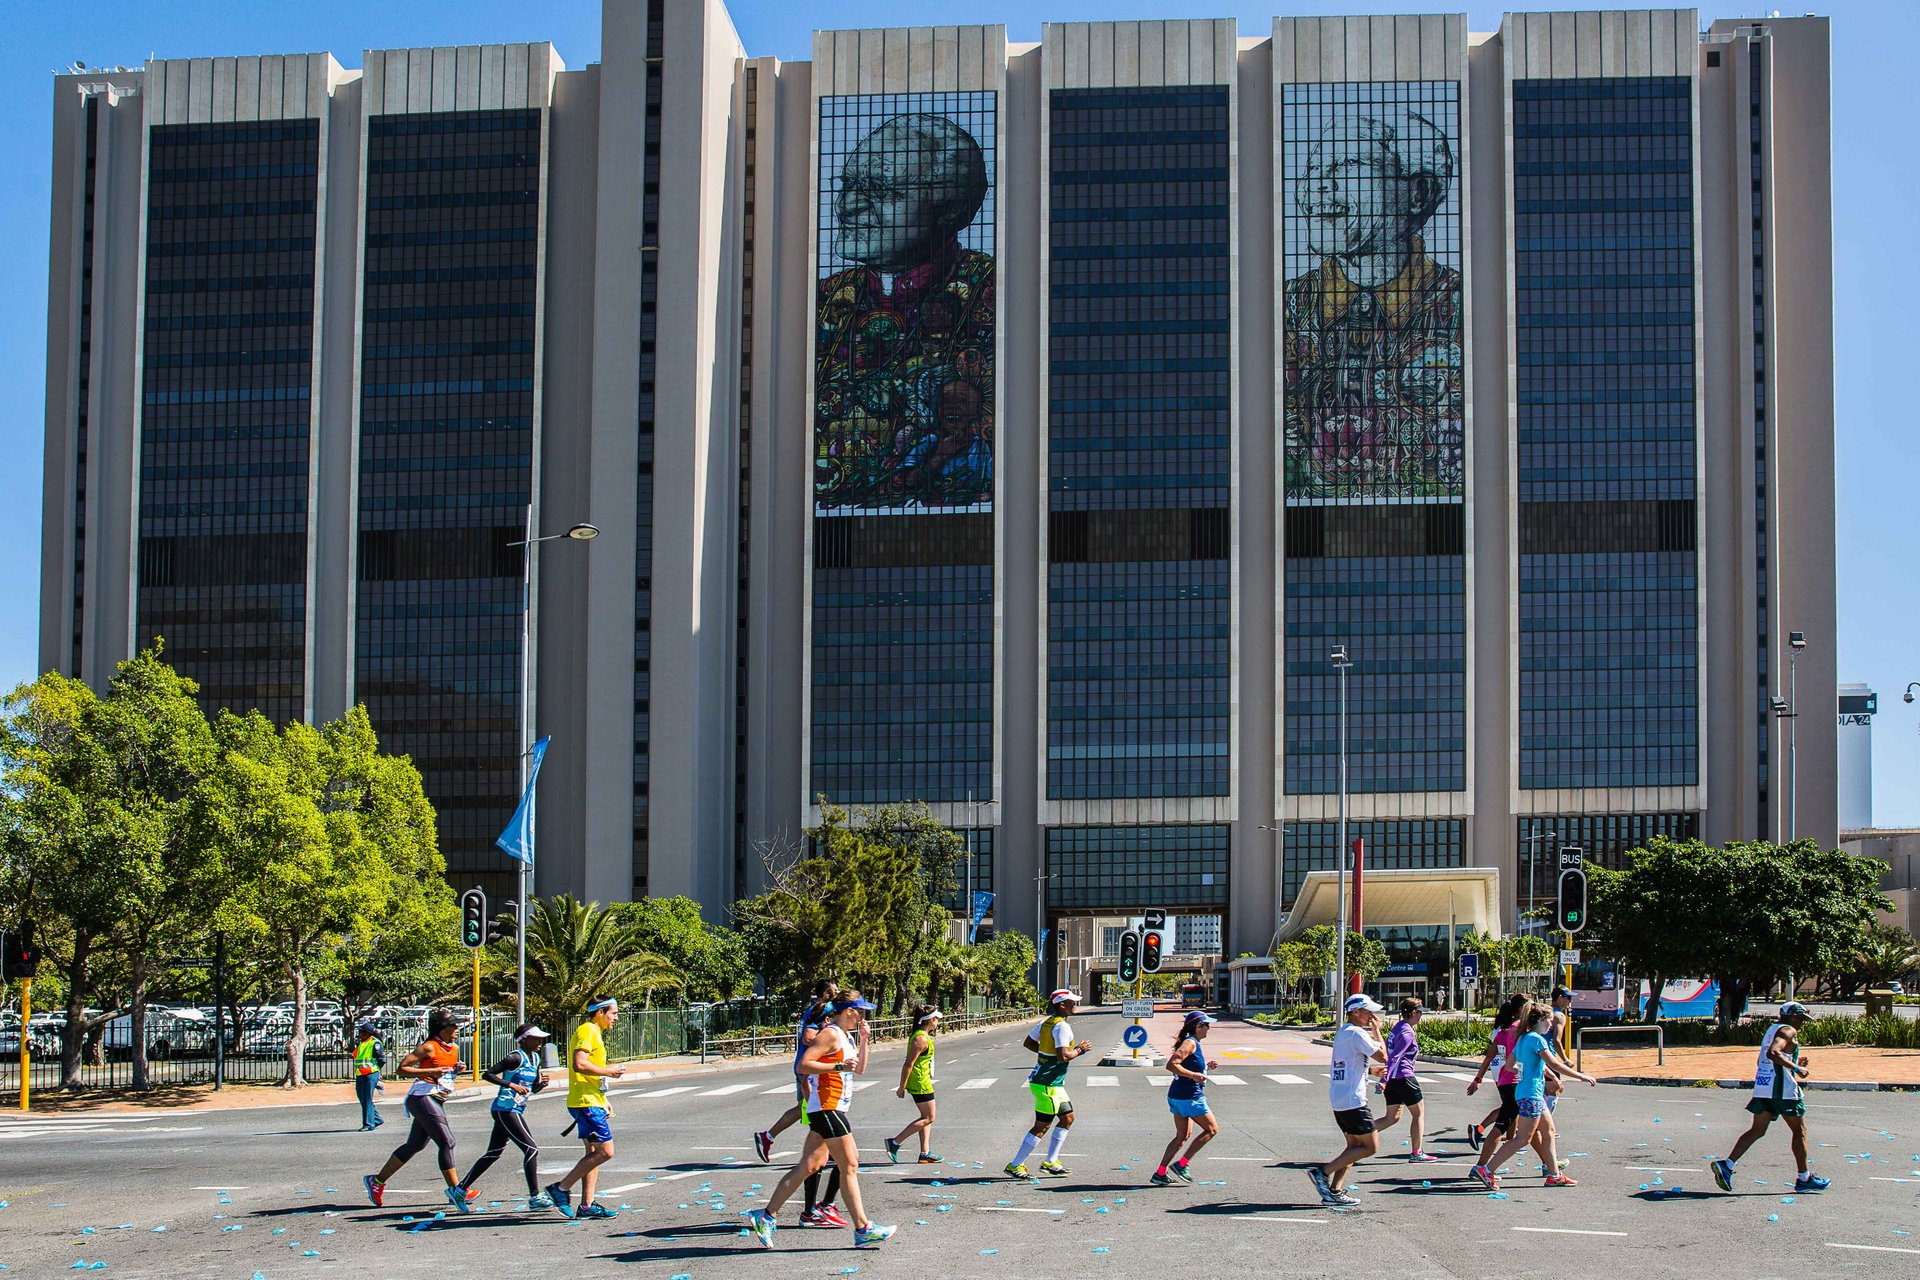 Best time for Sanlam Cape Town Marathon in Cape Town